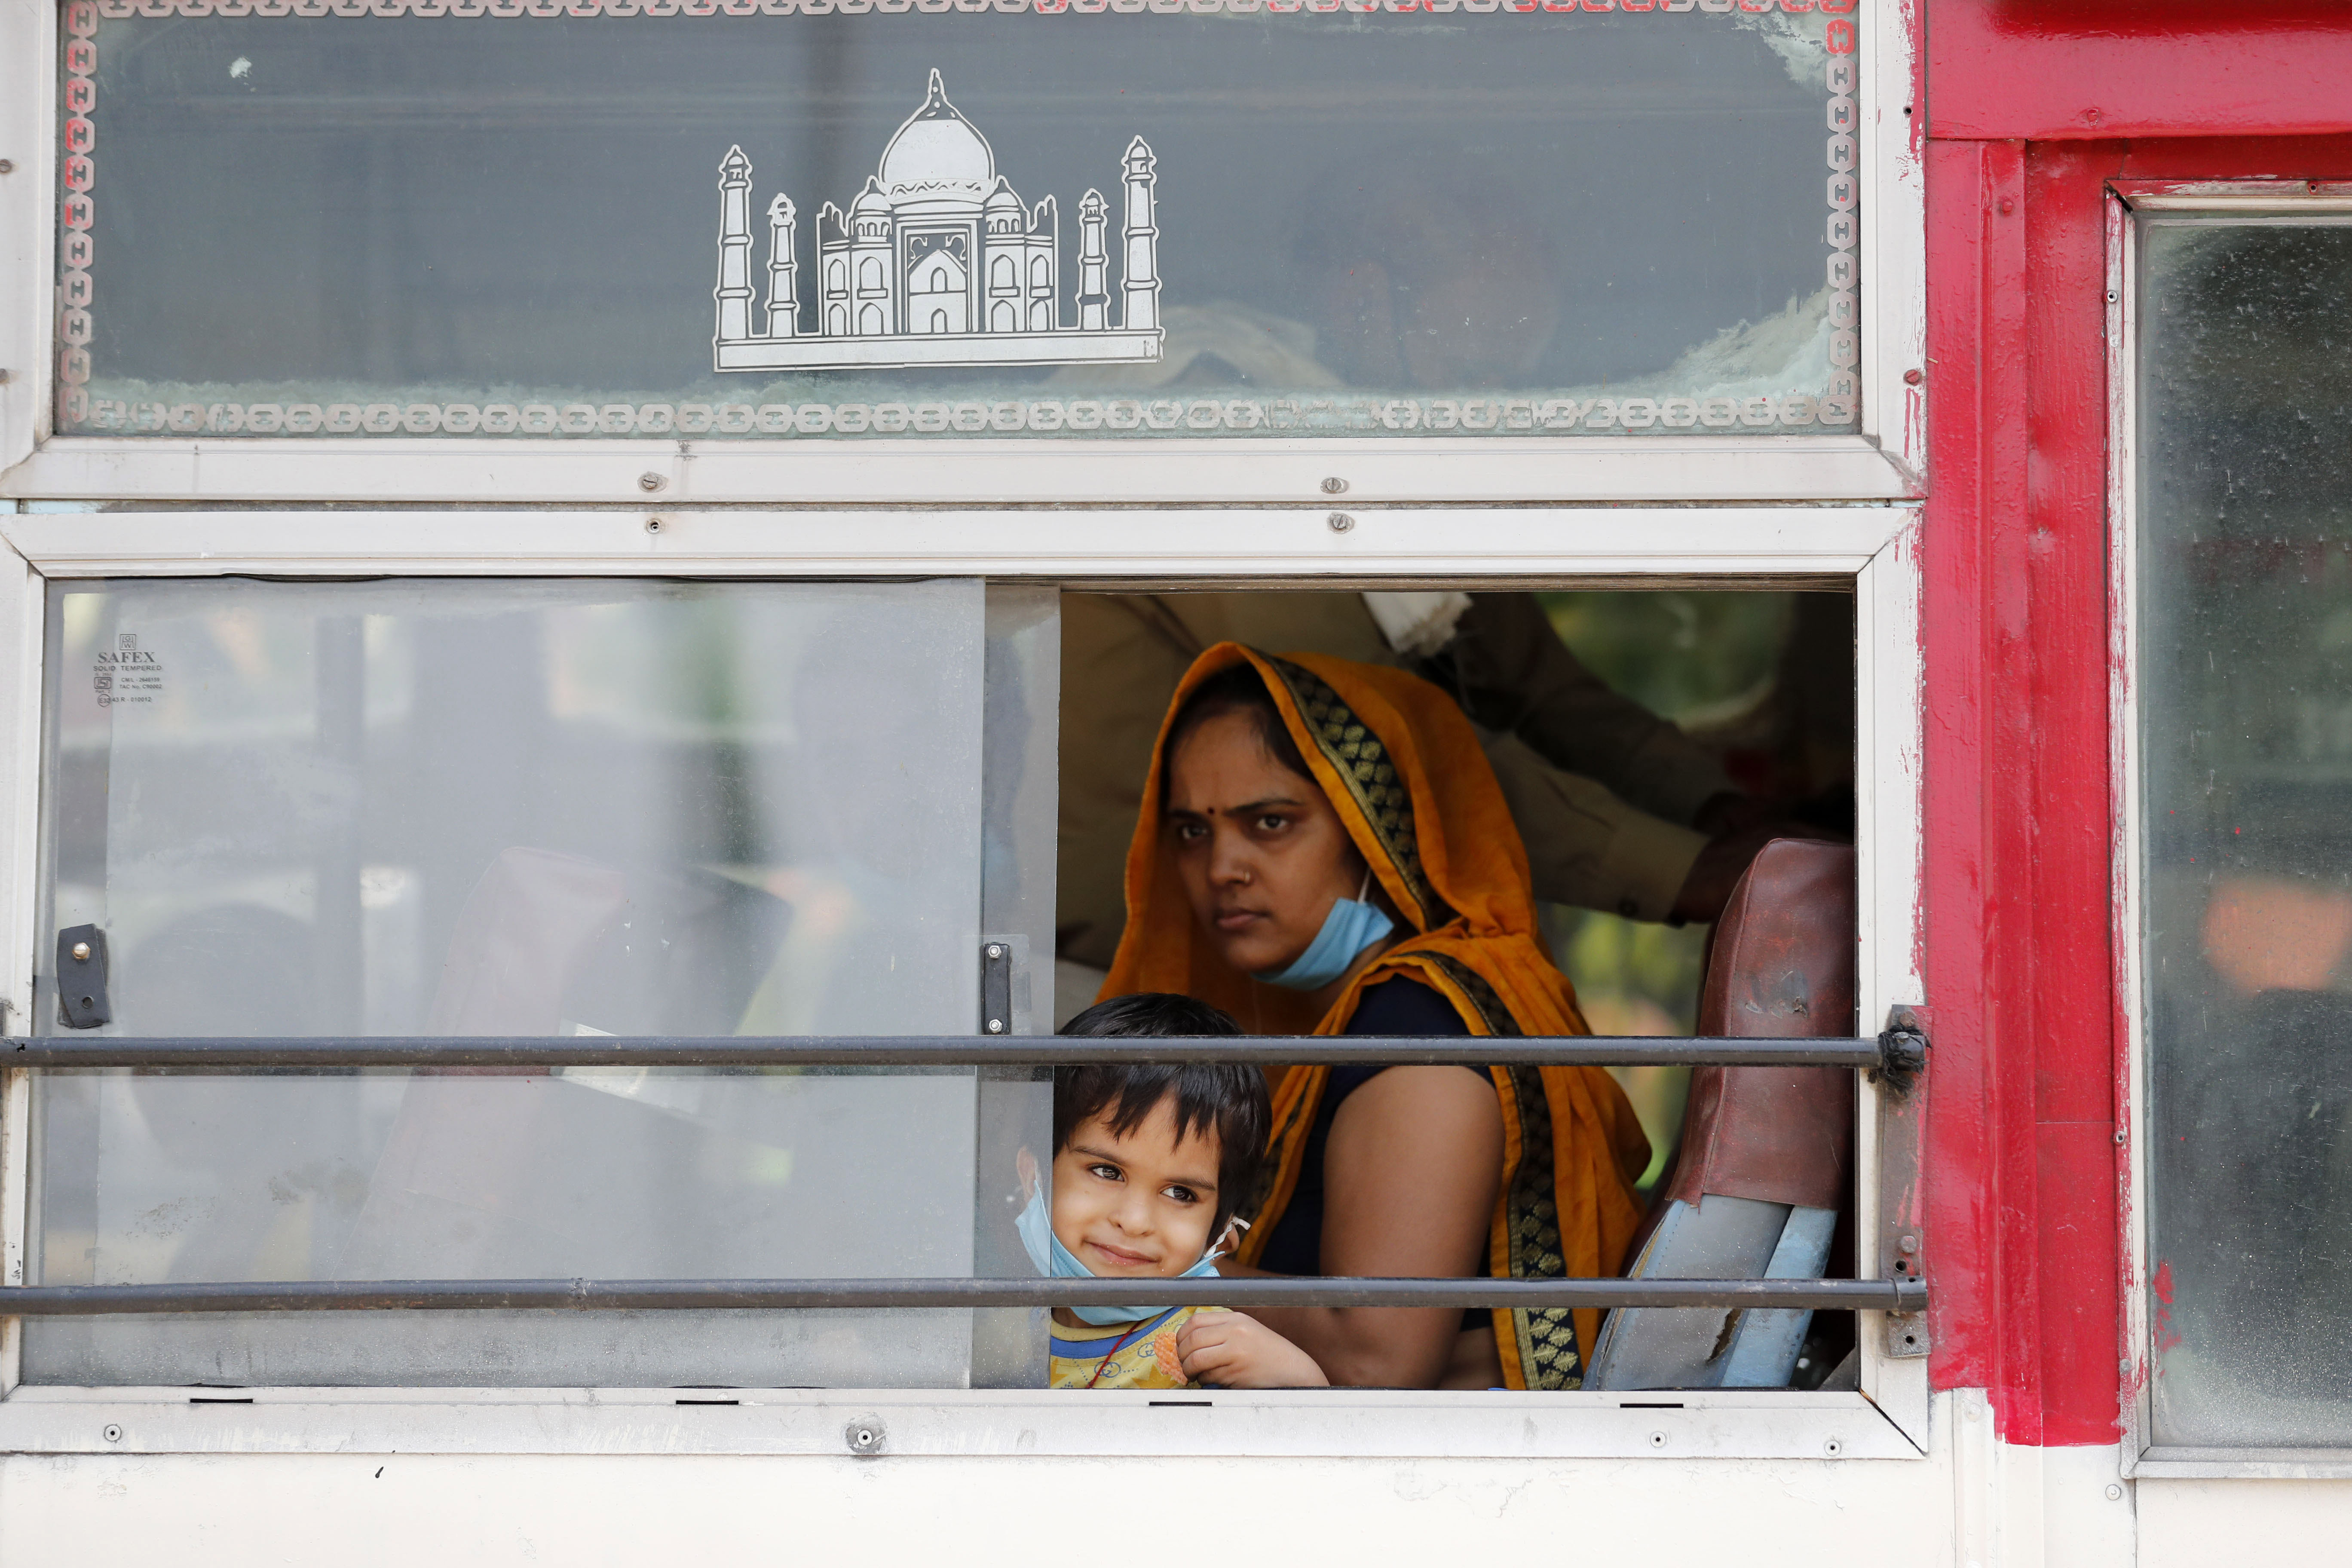 A migrant laborers, who arrived from Gujarat state on a train, sits with a child inside a bus as they prepare to leave for their native villages in their home state of Uttar Pradesh in Prayagraj, India, Wednesday, May 6, 2020. India is running train service for thousands of migrant workers desperate to return home since it imposed a nationwide lockdown to control the spread of the coronavirus. Photo: AP